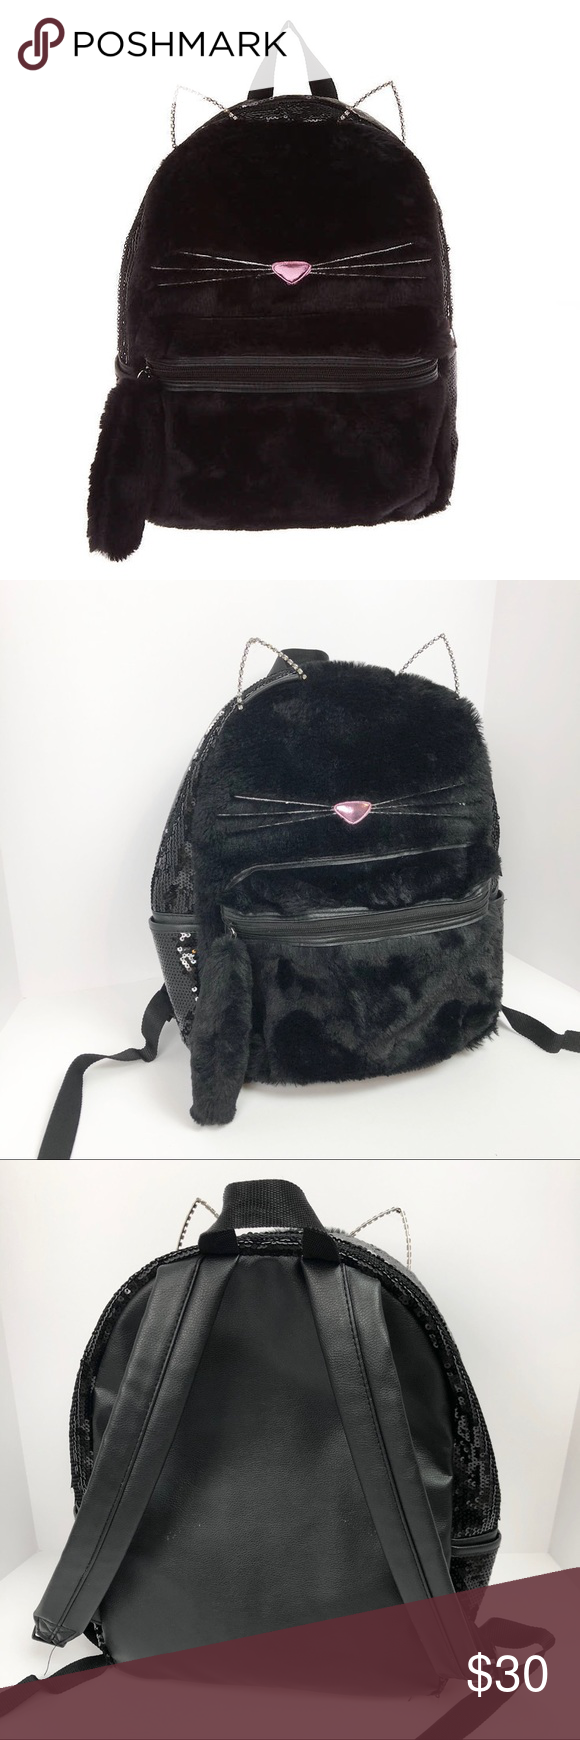 Claire's Fuzzy Sequin Black Cat Backpack 🔹like new